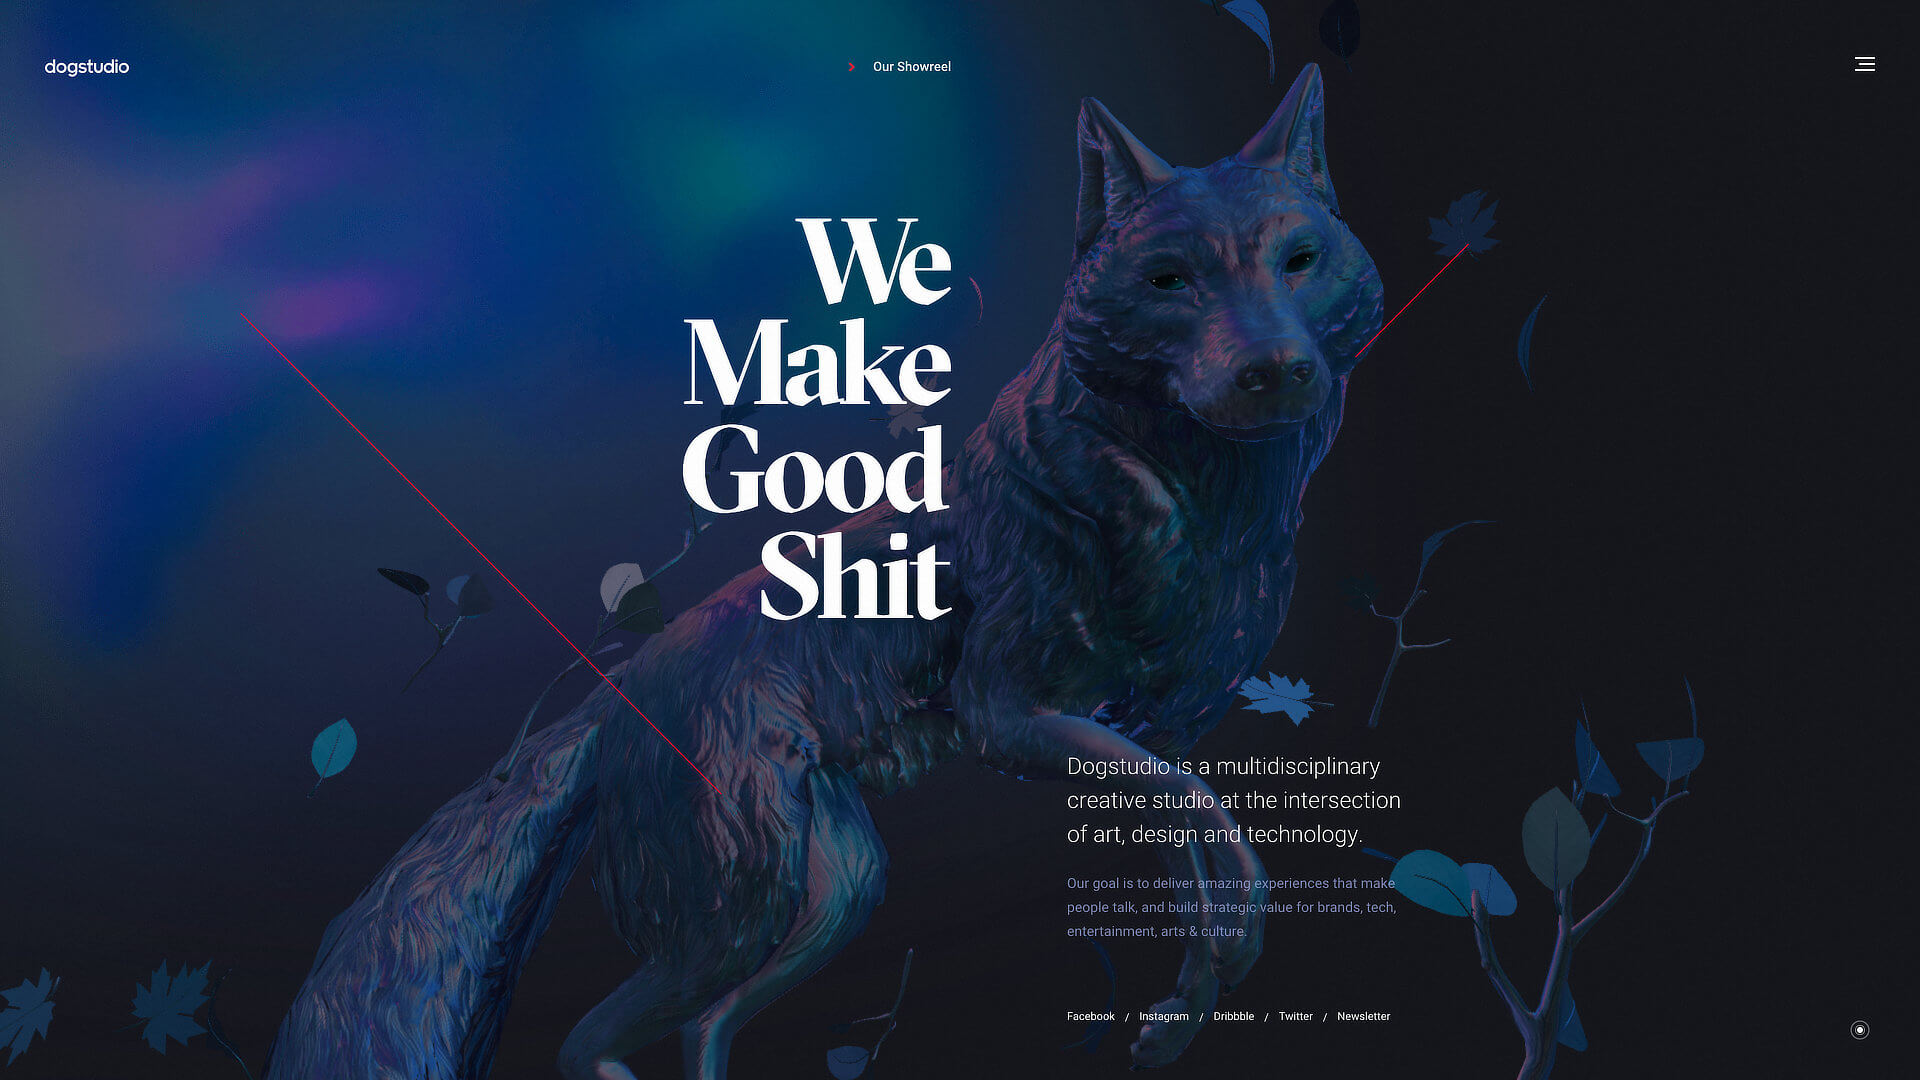 Website trends 2019 - 8: 3D & Animation